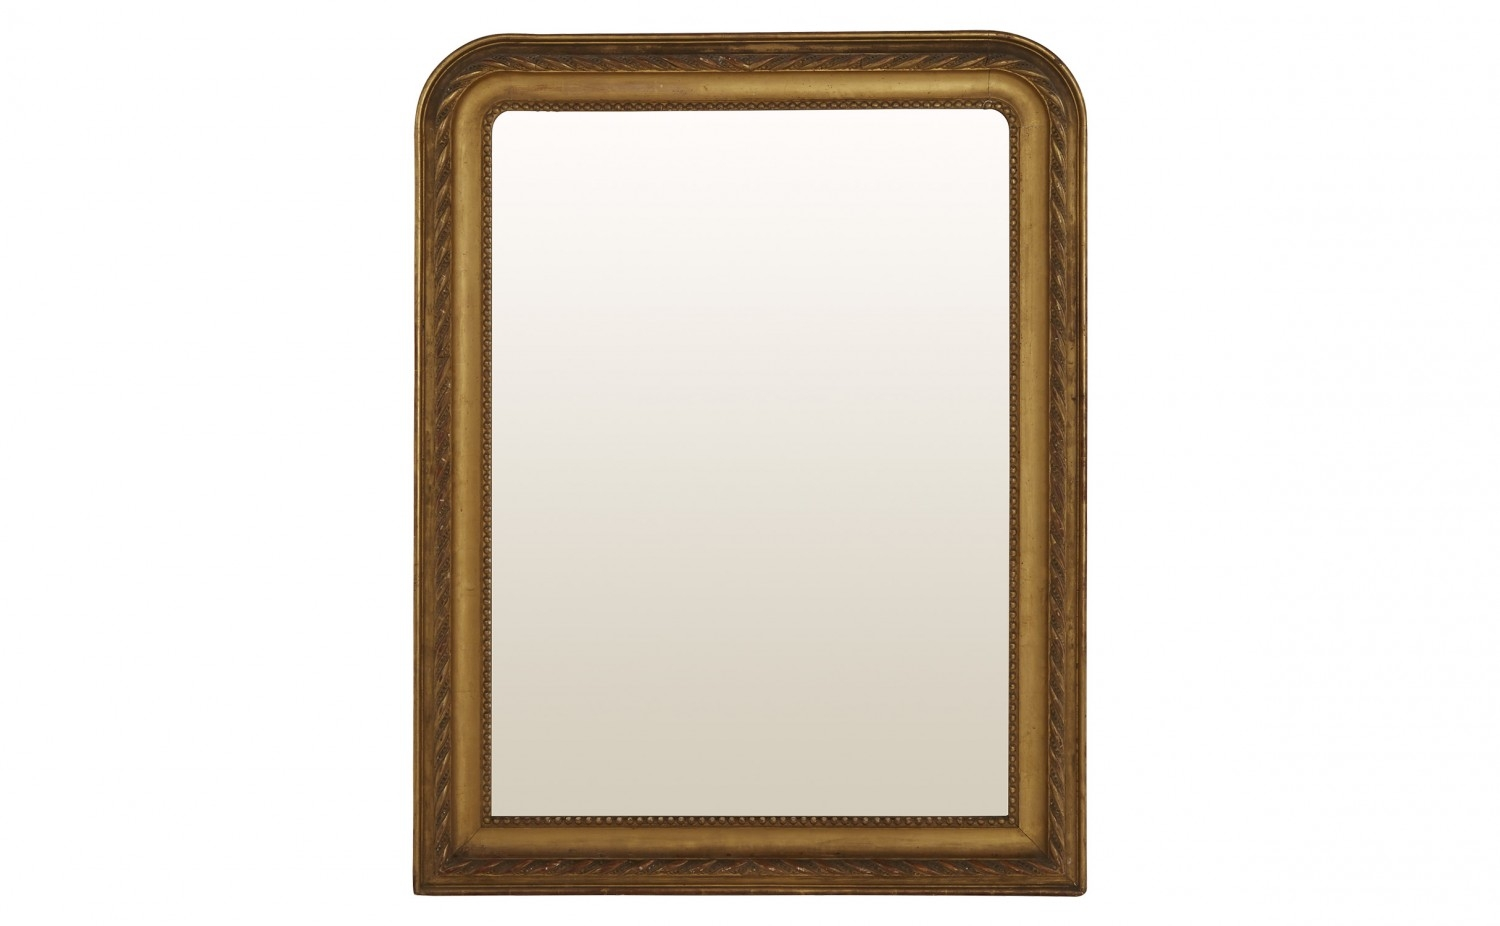 Vintage Gilt Mirror Jayson Home With Regard To Gilt Mirror (View 10 of 15)